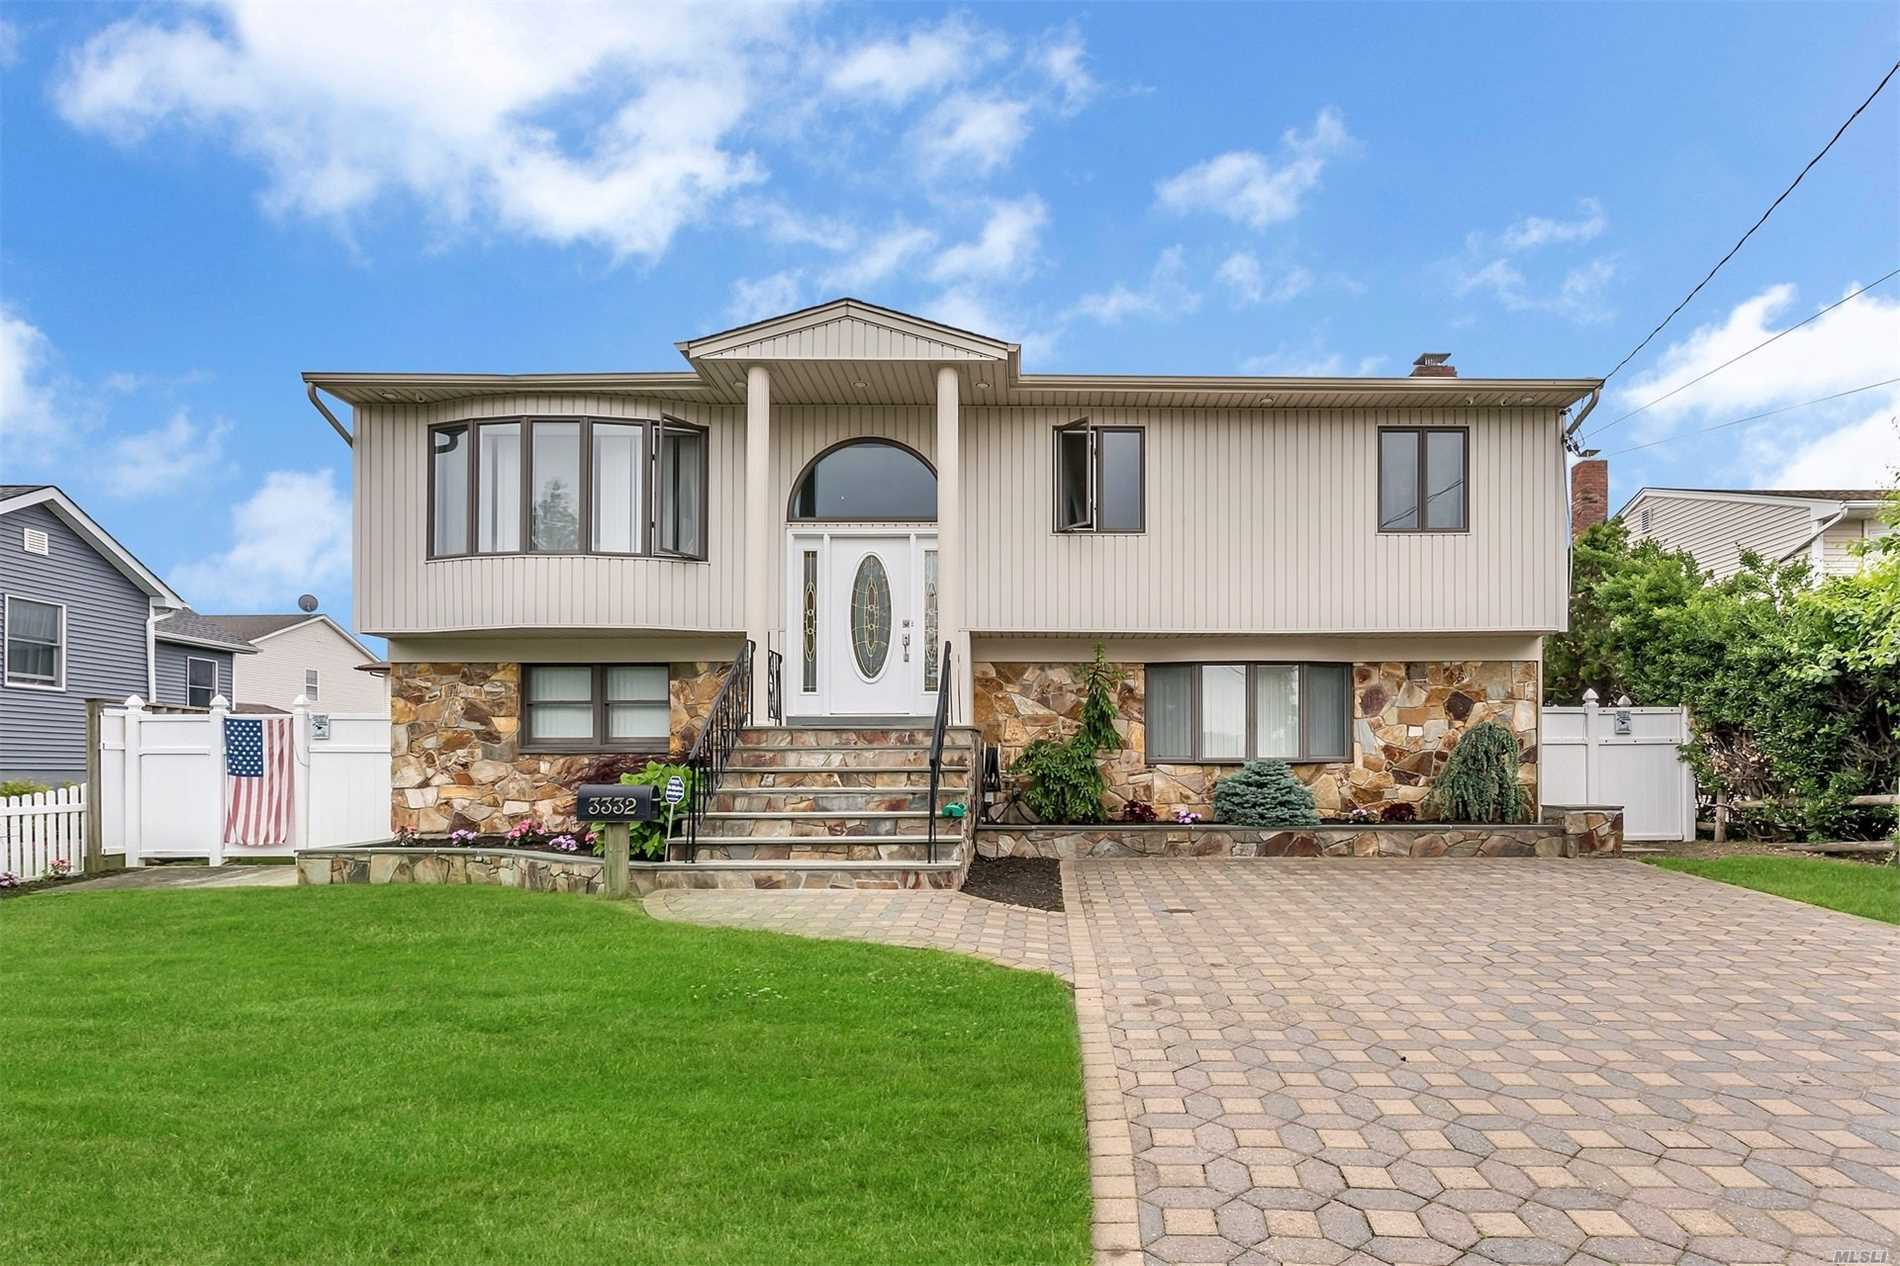 3332 Bay Front Dr - Baldwin, New York